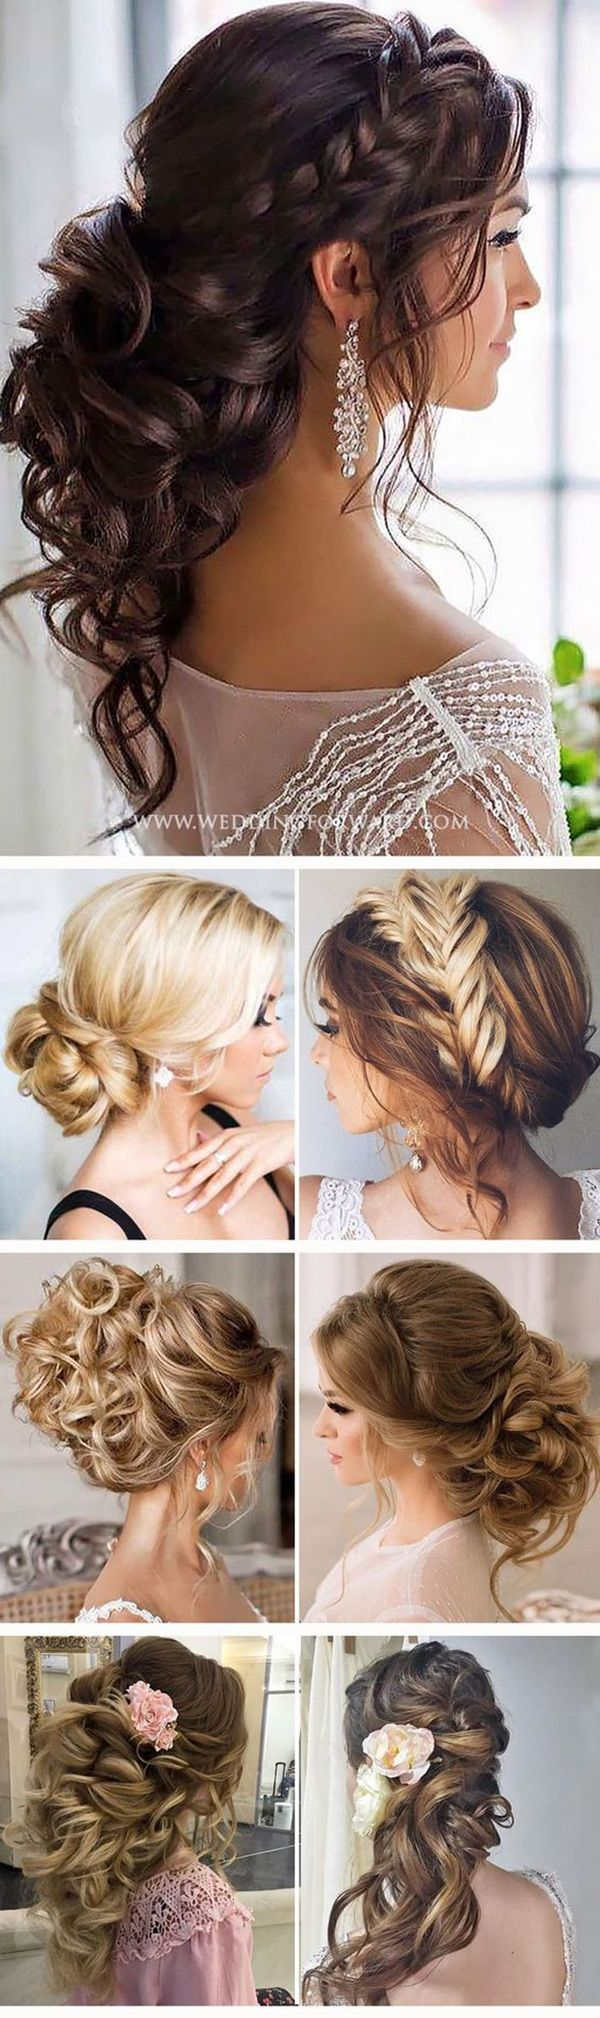 best 25+ wedding hairstyles long hair ideas on pinterest | long